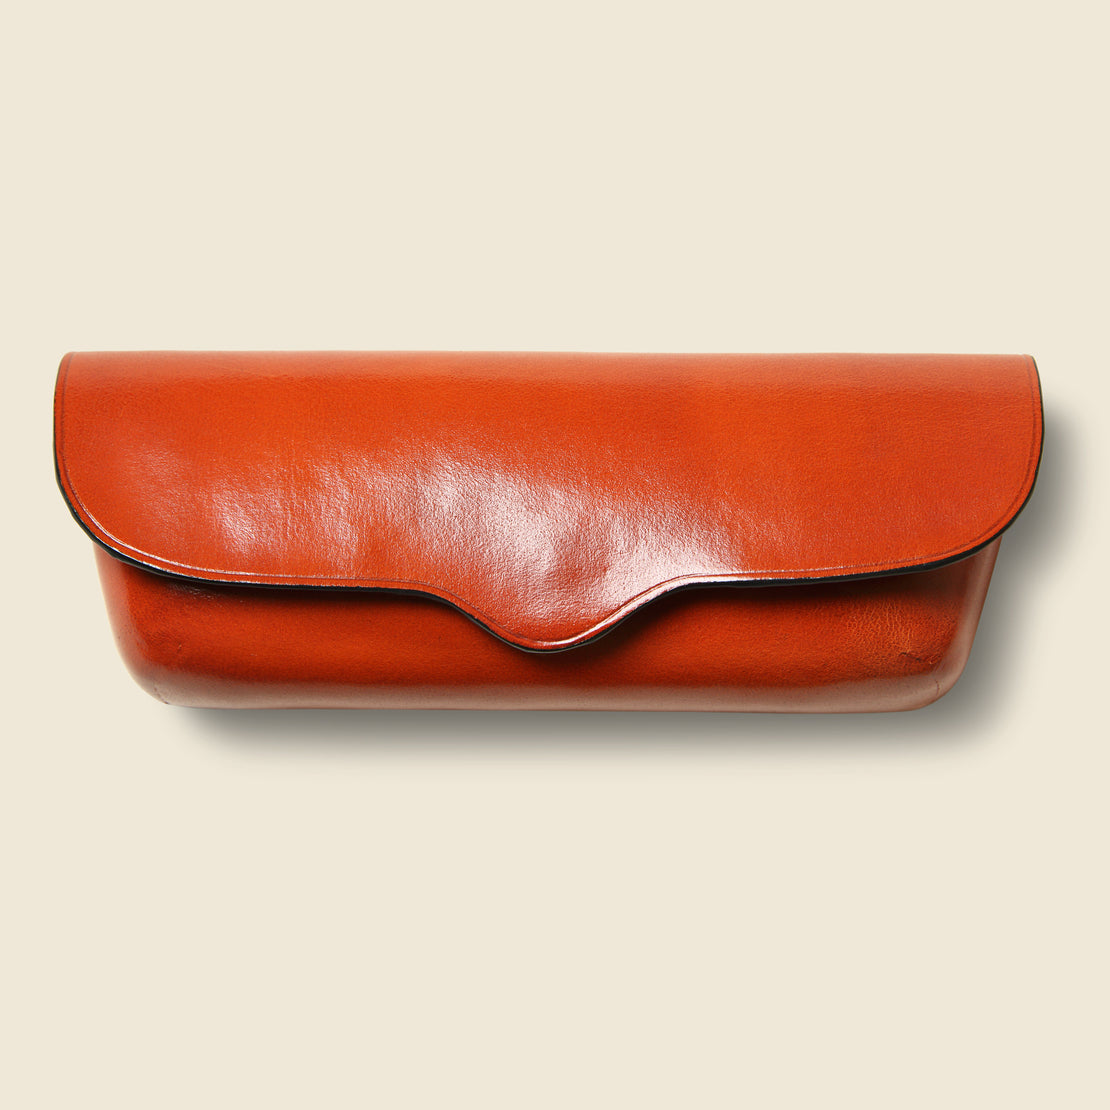 Il Bussetto Eyeglass Case - Orange